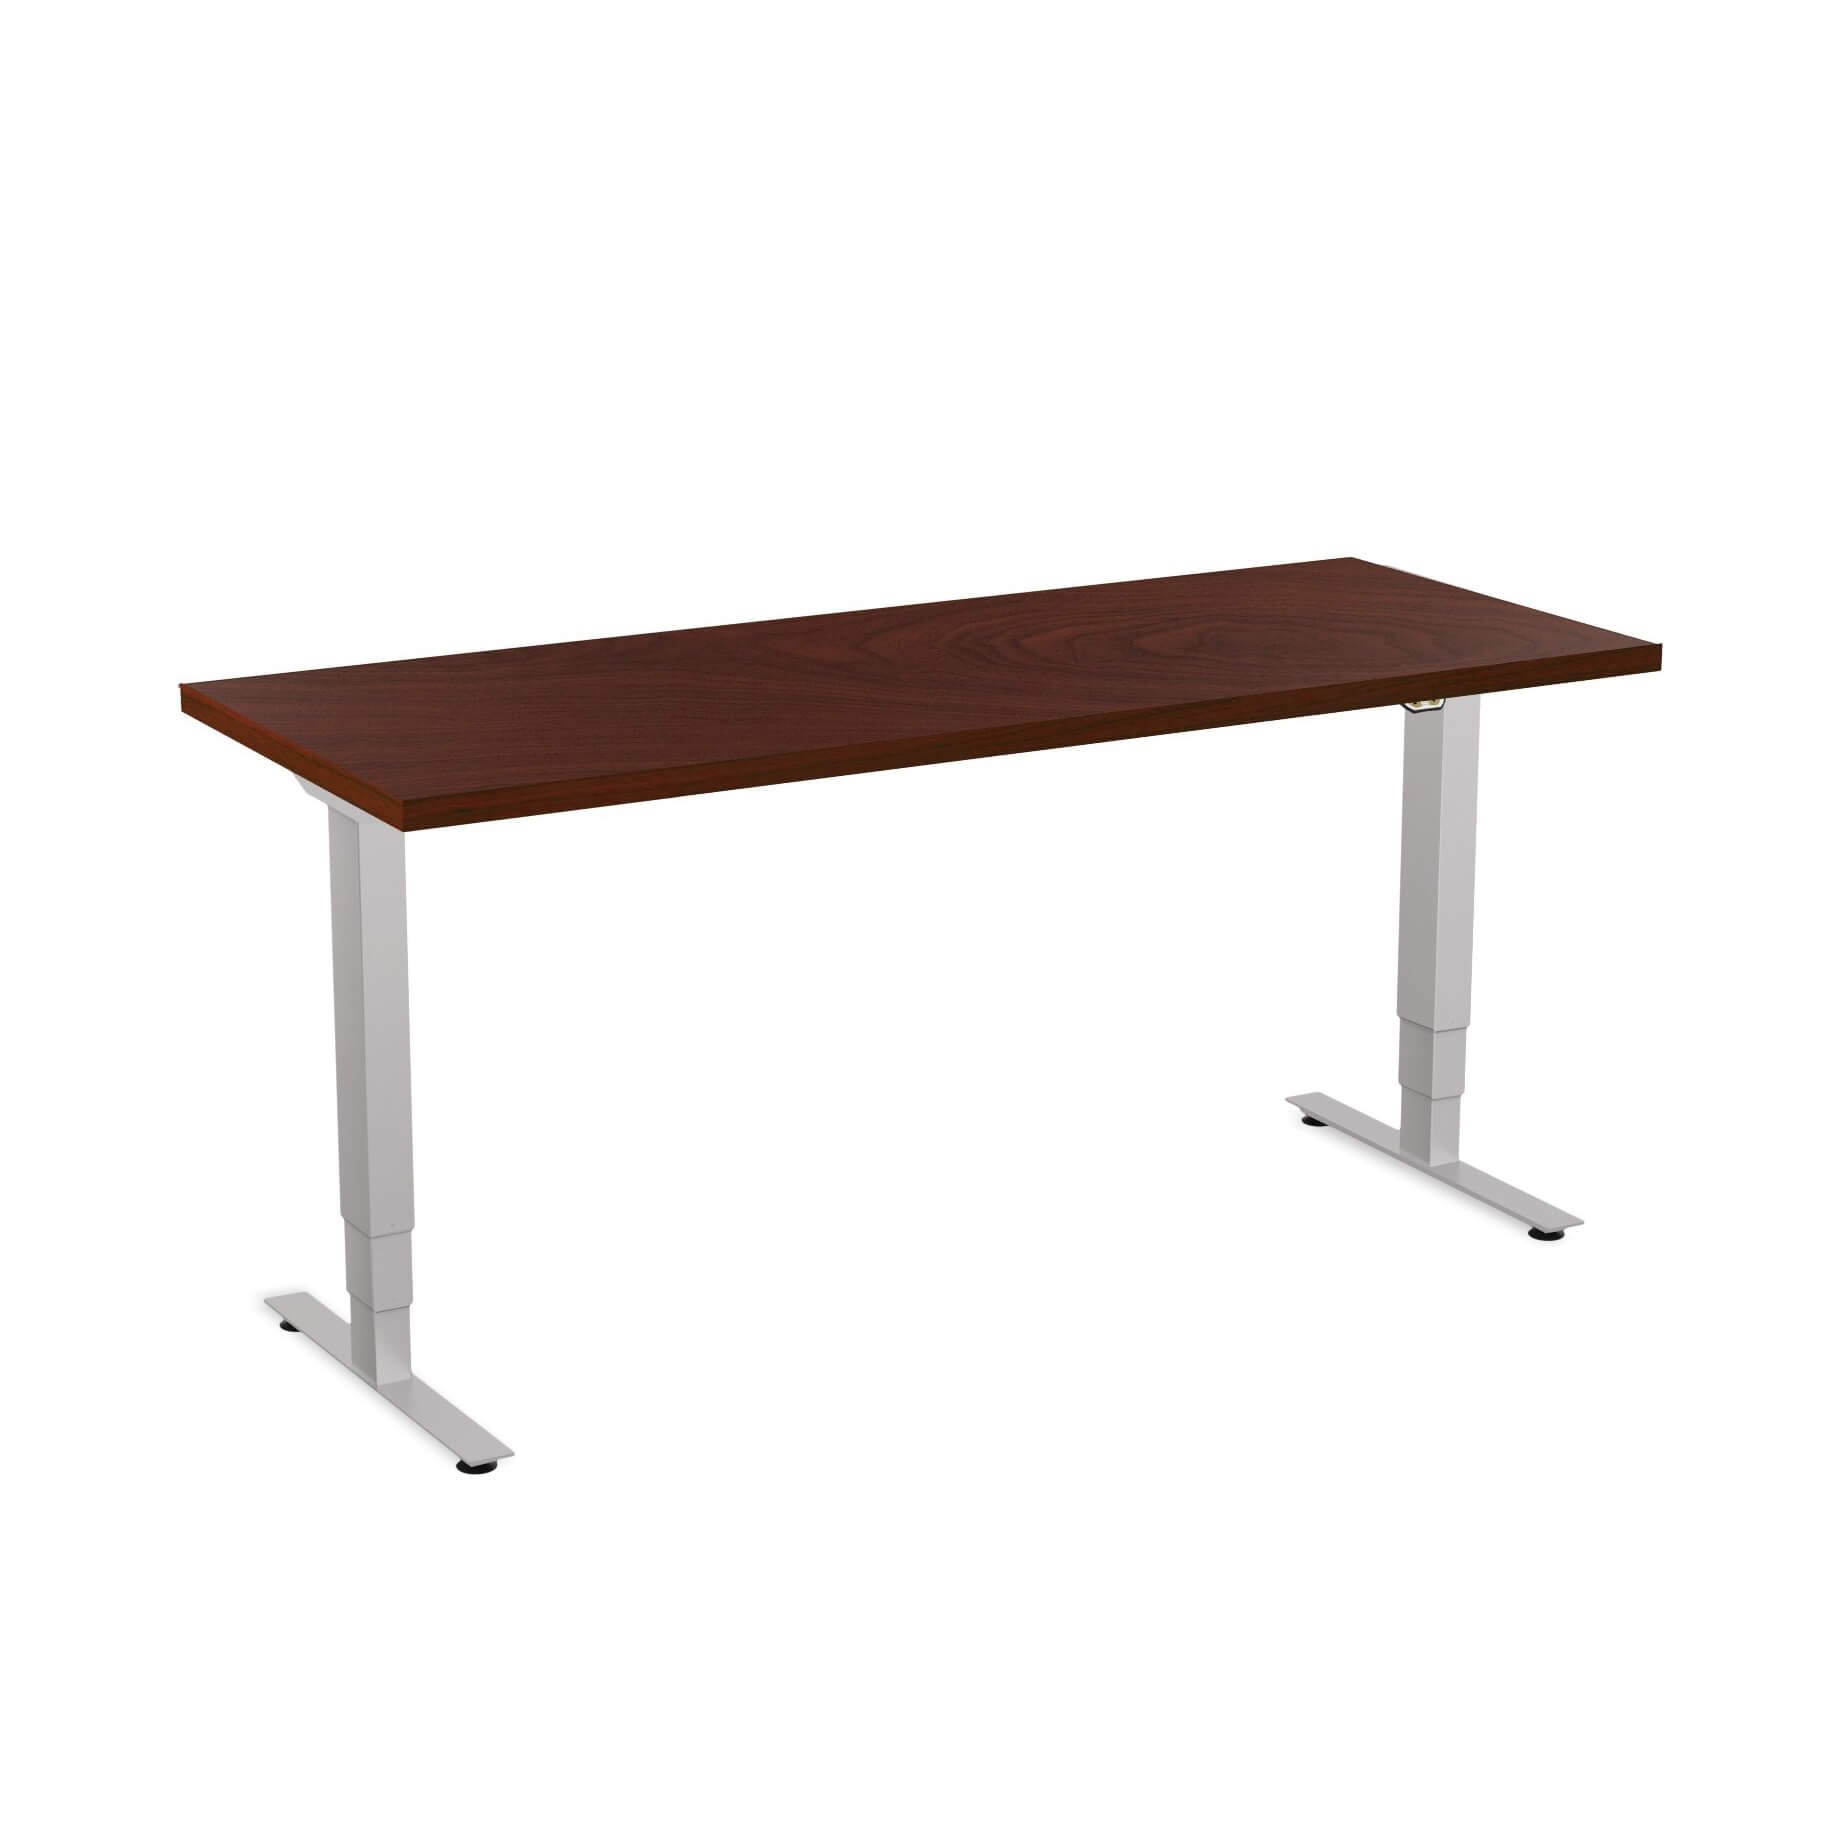 Sit stand desk adjustable CUB 1D PATR 2460 MH EPS